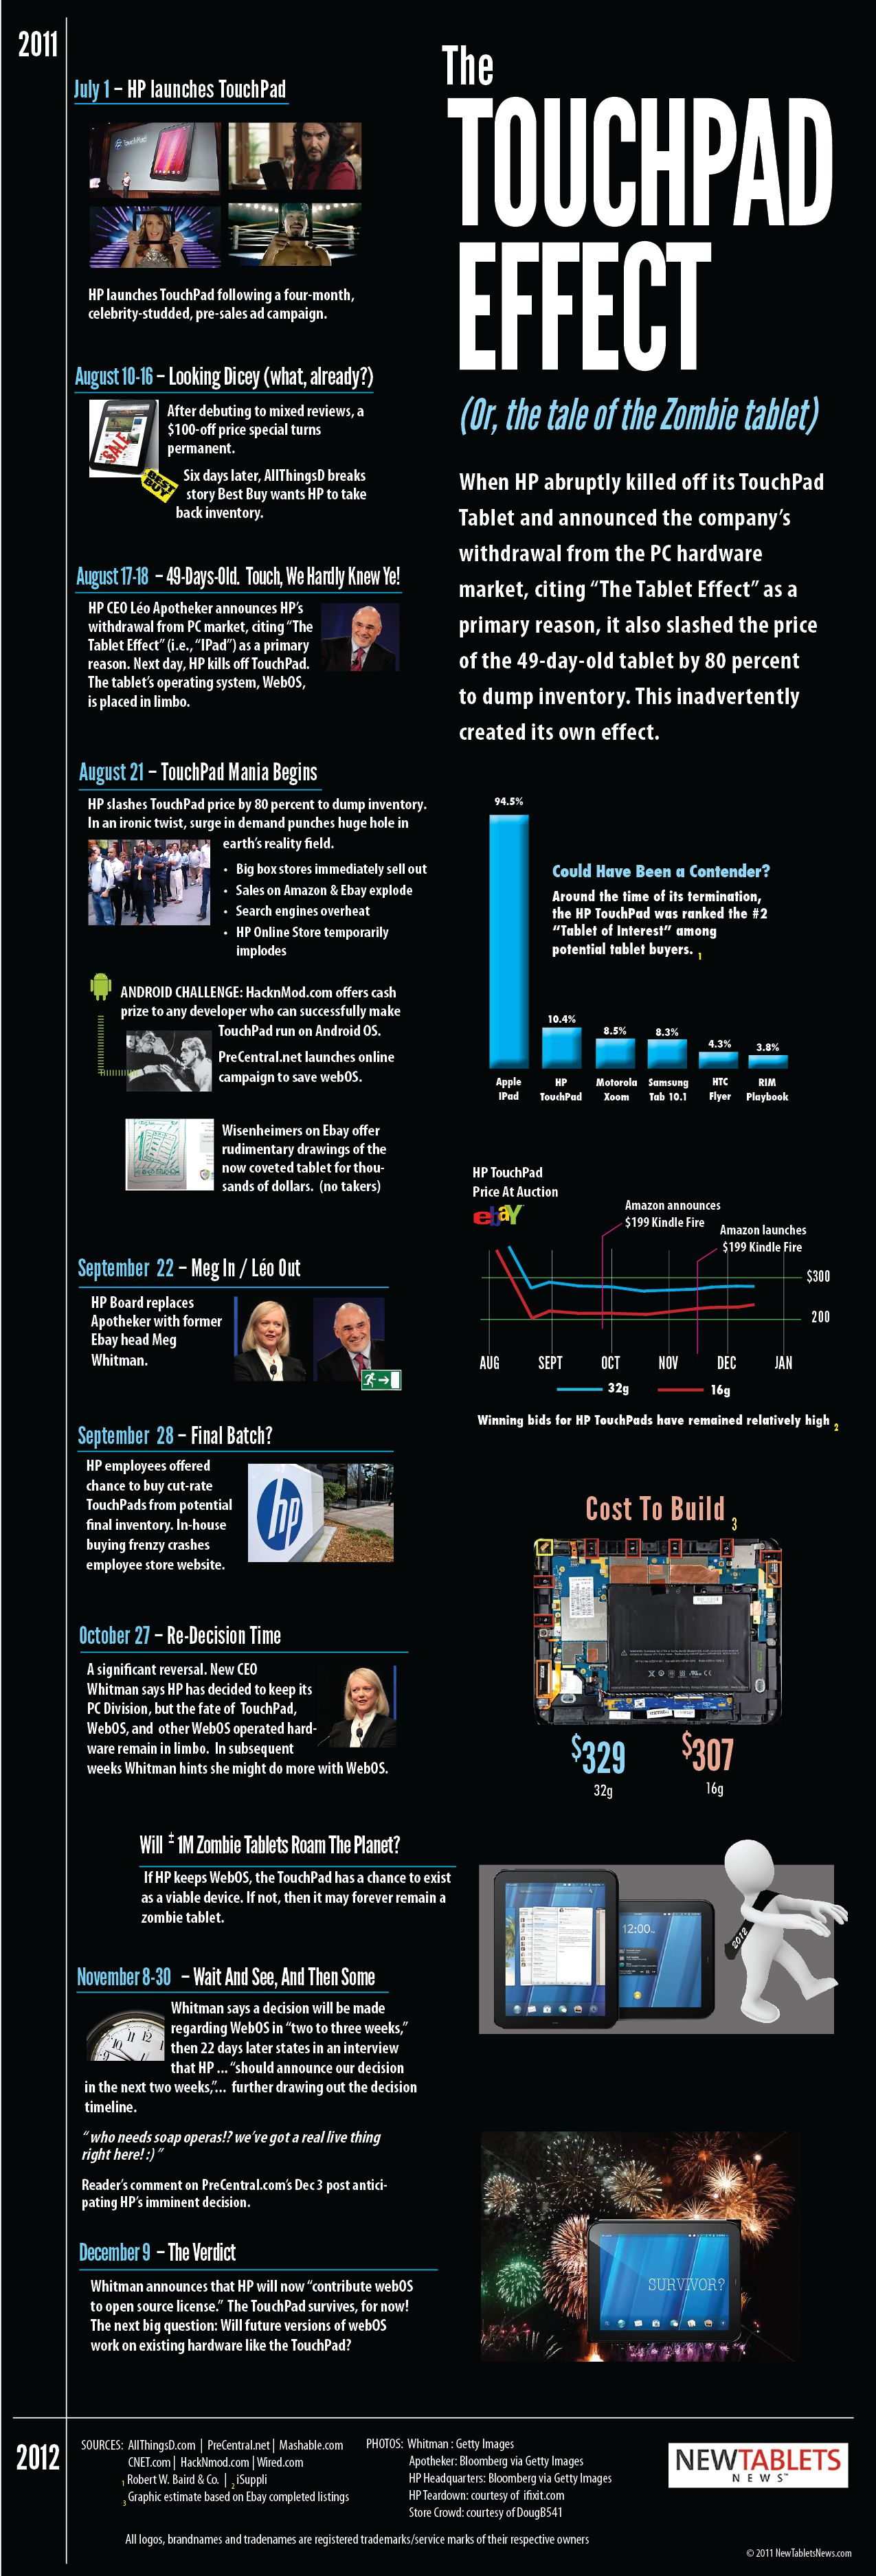 Infographics - The TouchPad Effect (Or, The Tale of the Zombie Tablet)